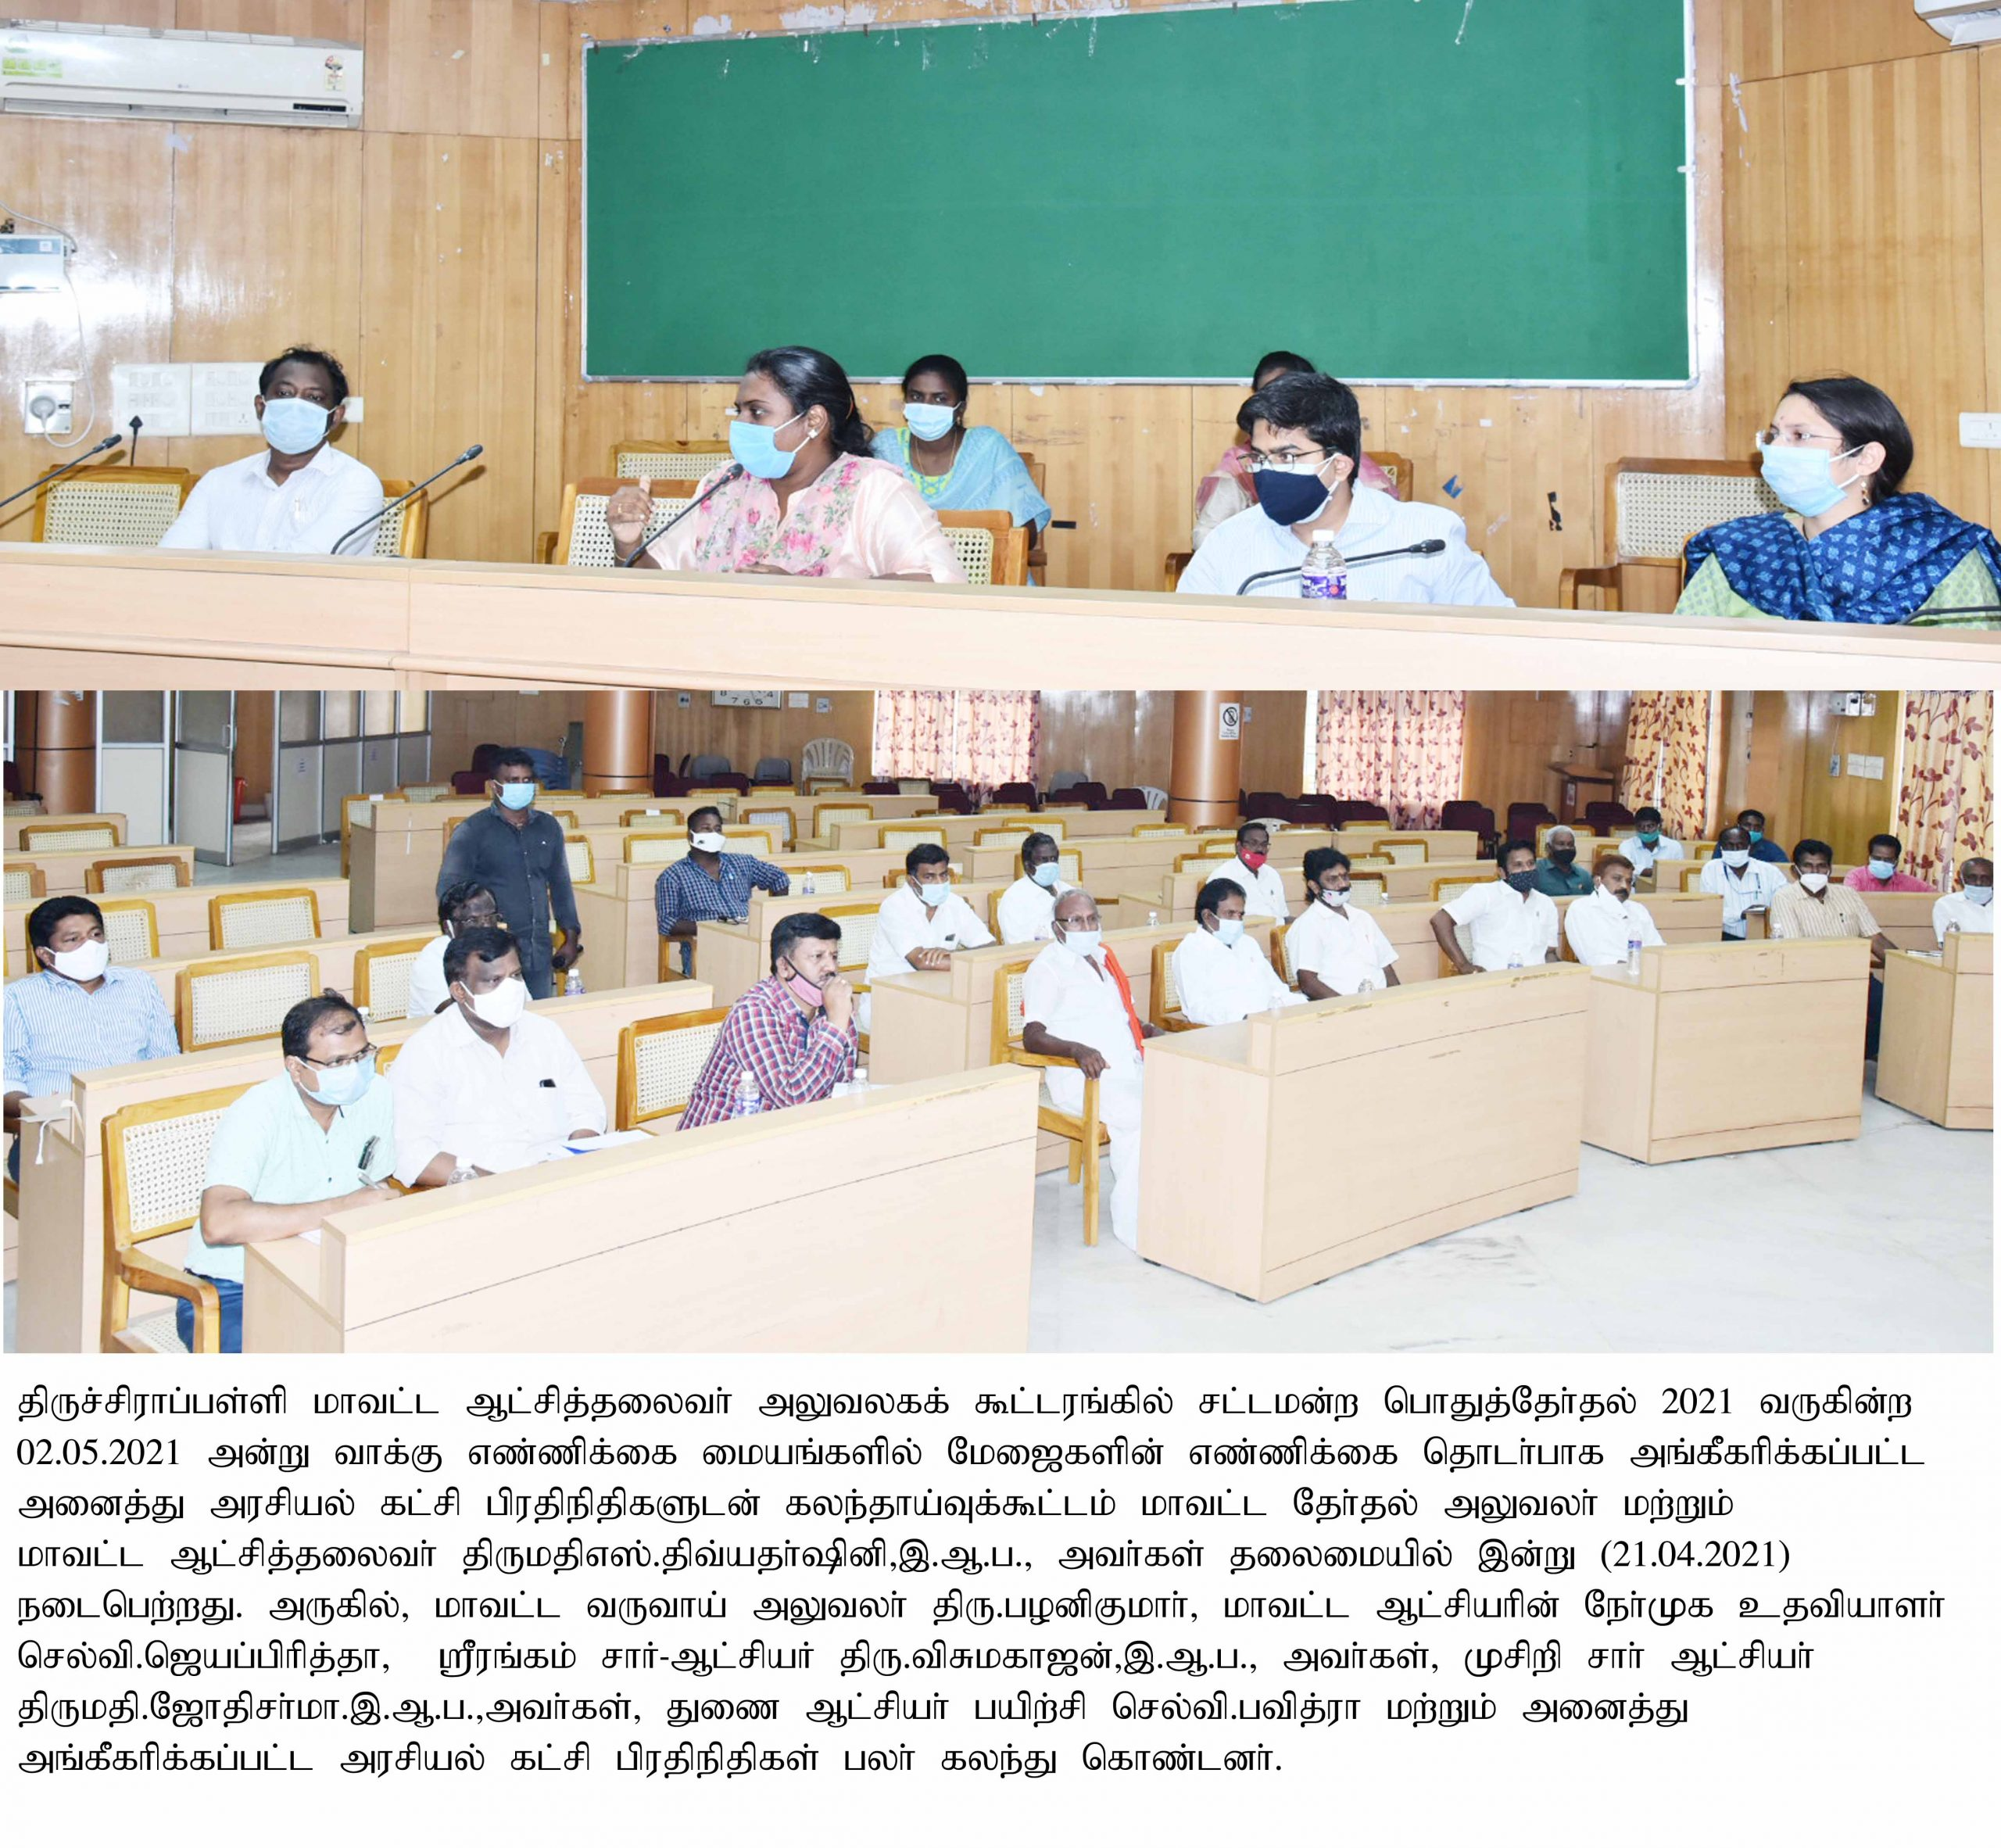 Election Meeting Held Under the Chairmanships of District Collector and District Election Officer on 21-04-2021